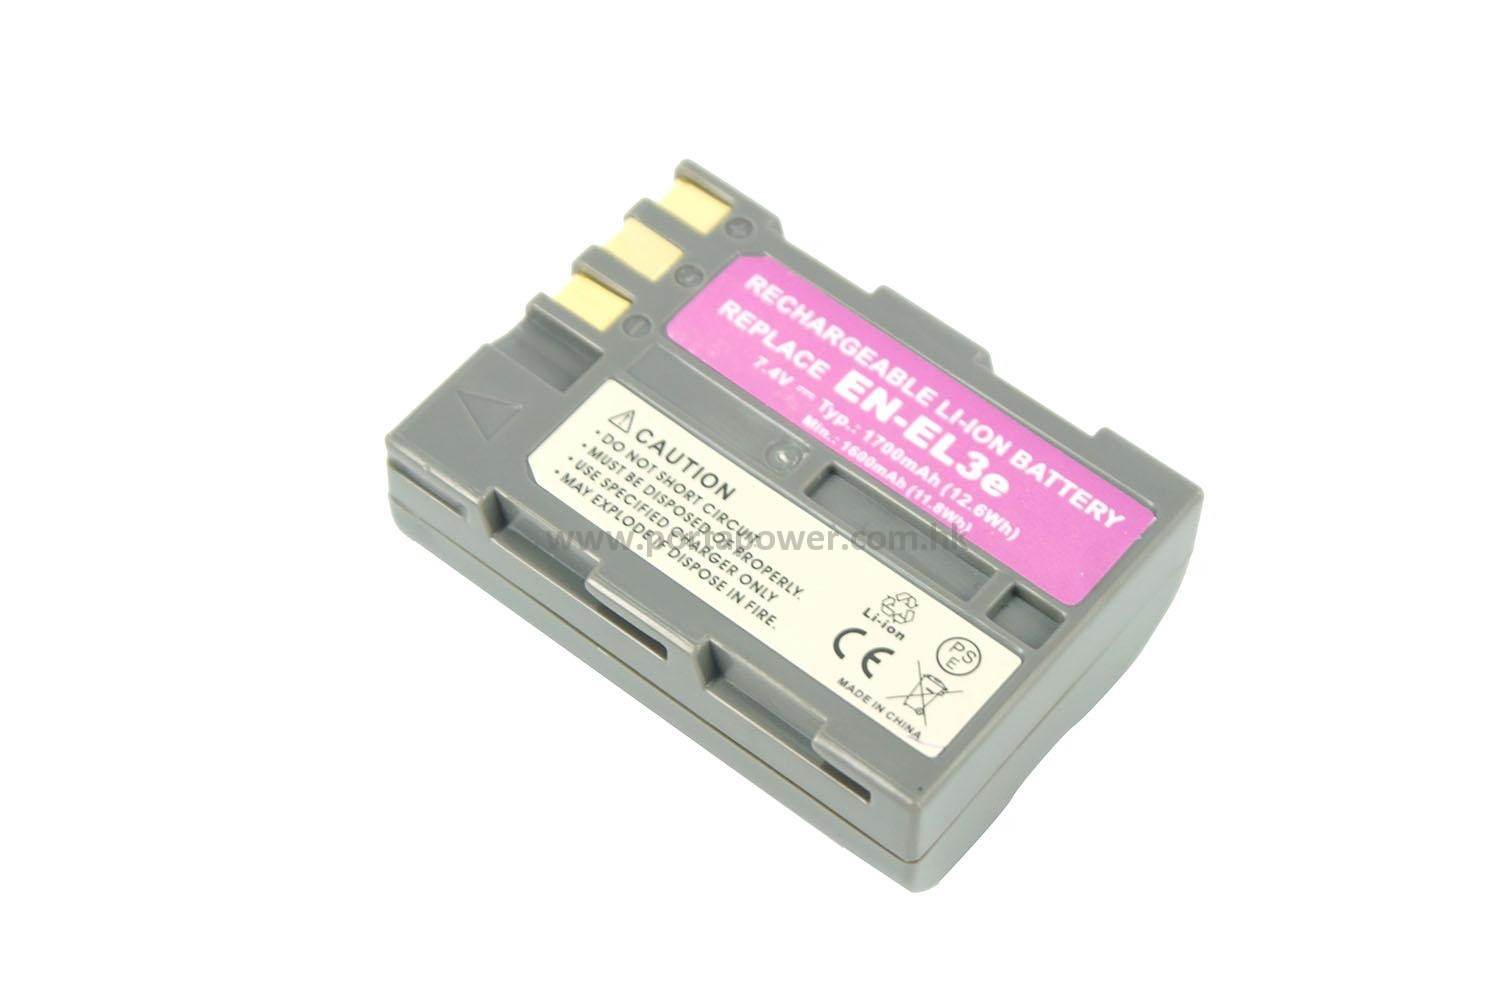 Replacement for Nikon DSLR D700 Battery and Charger 1600mAh 7.4V Lithium-Ion Compatible with Nikon EN-EL3E Digital Camera Batteries and Chargers